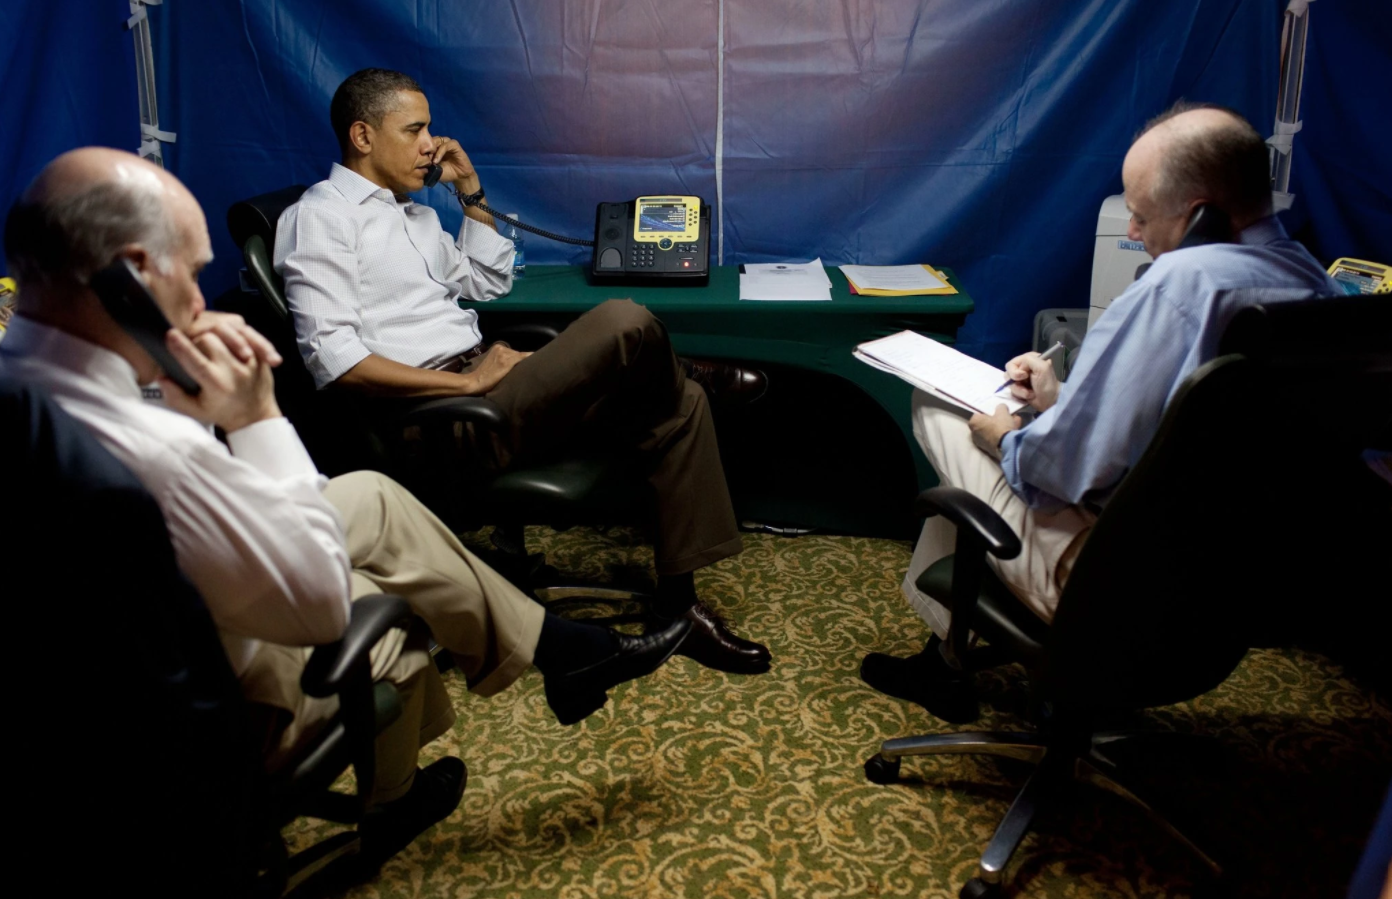 Obama's Portable Zone of Secrecy (Some Assembly Required) 이미지